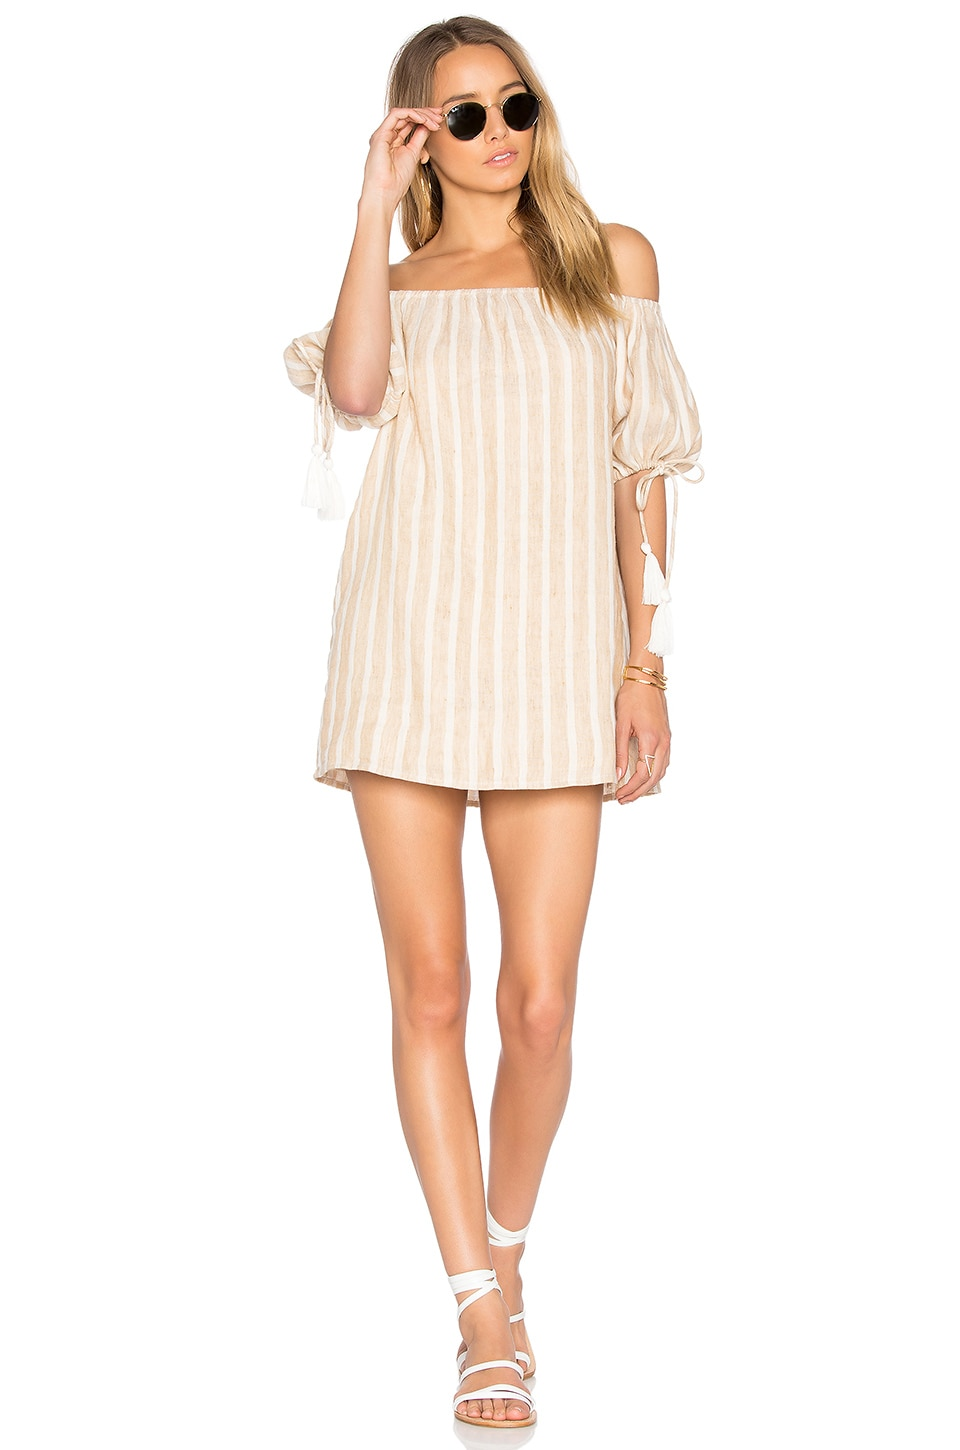 Tularosa x REVOLVE Kya Dress in Natural Stripe Linen